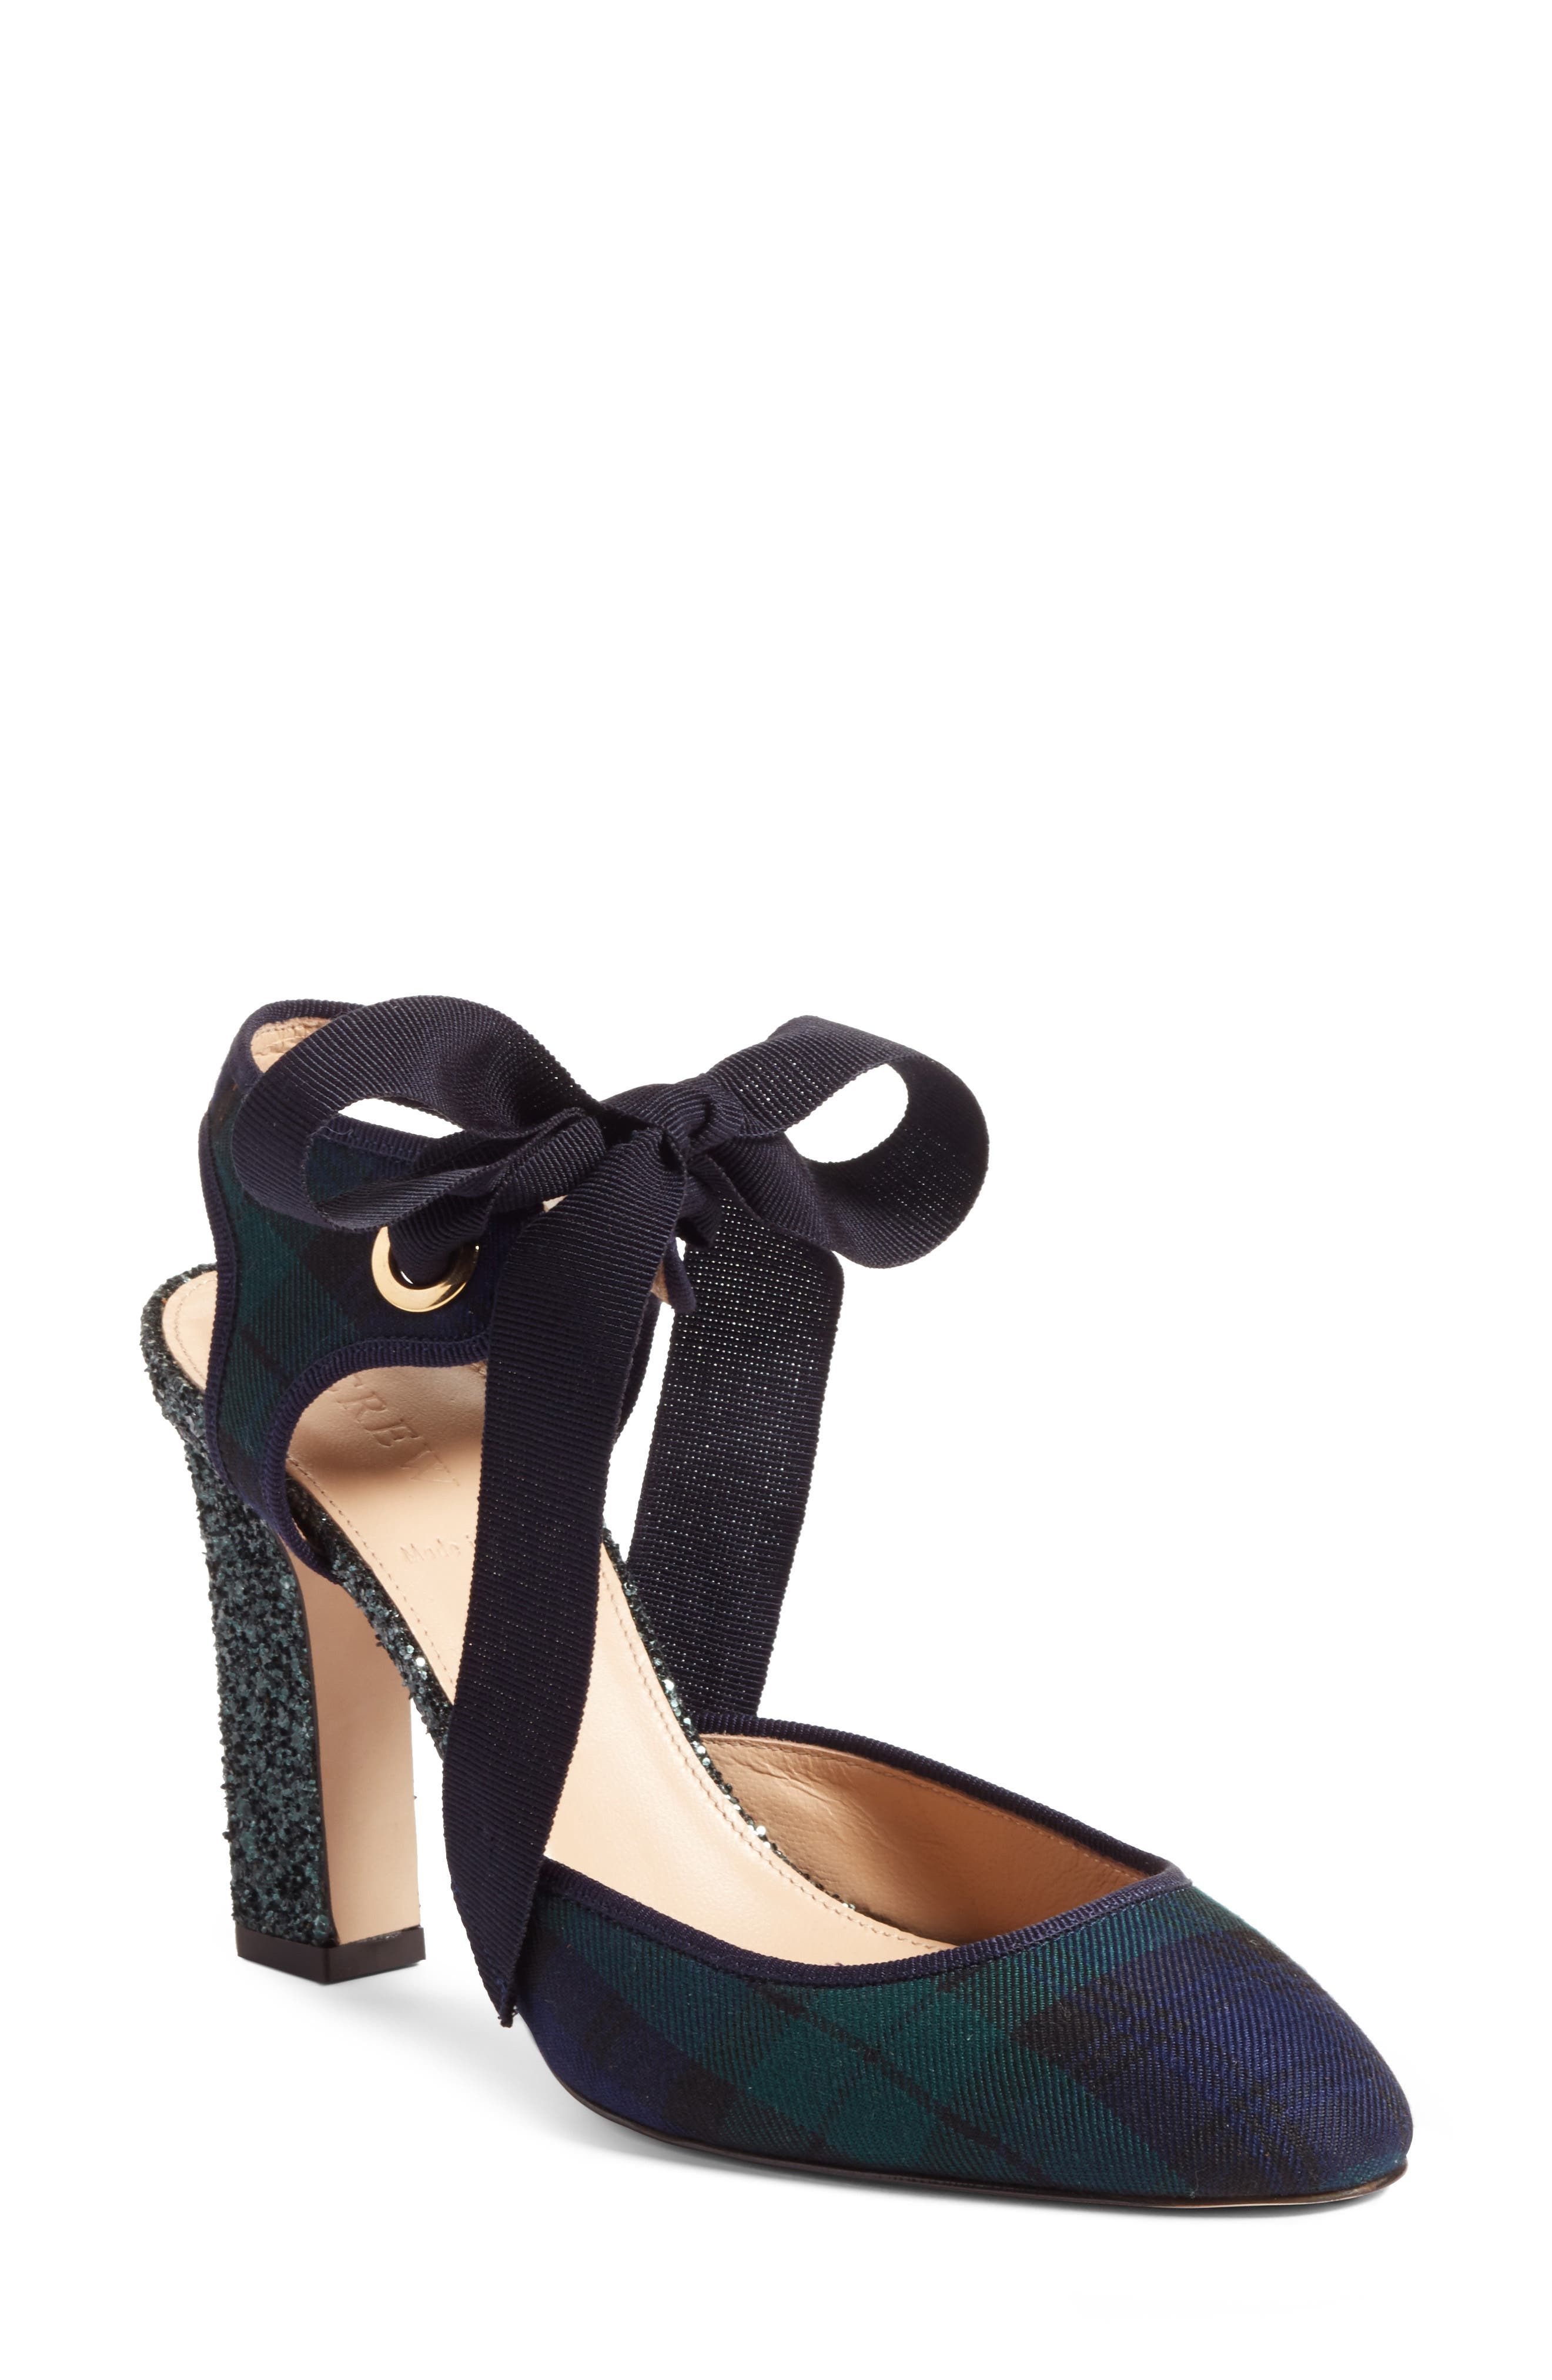 Blackwatch Bow Pump,                         Main,                         color, Green/ Black Leather